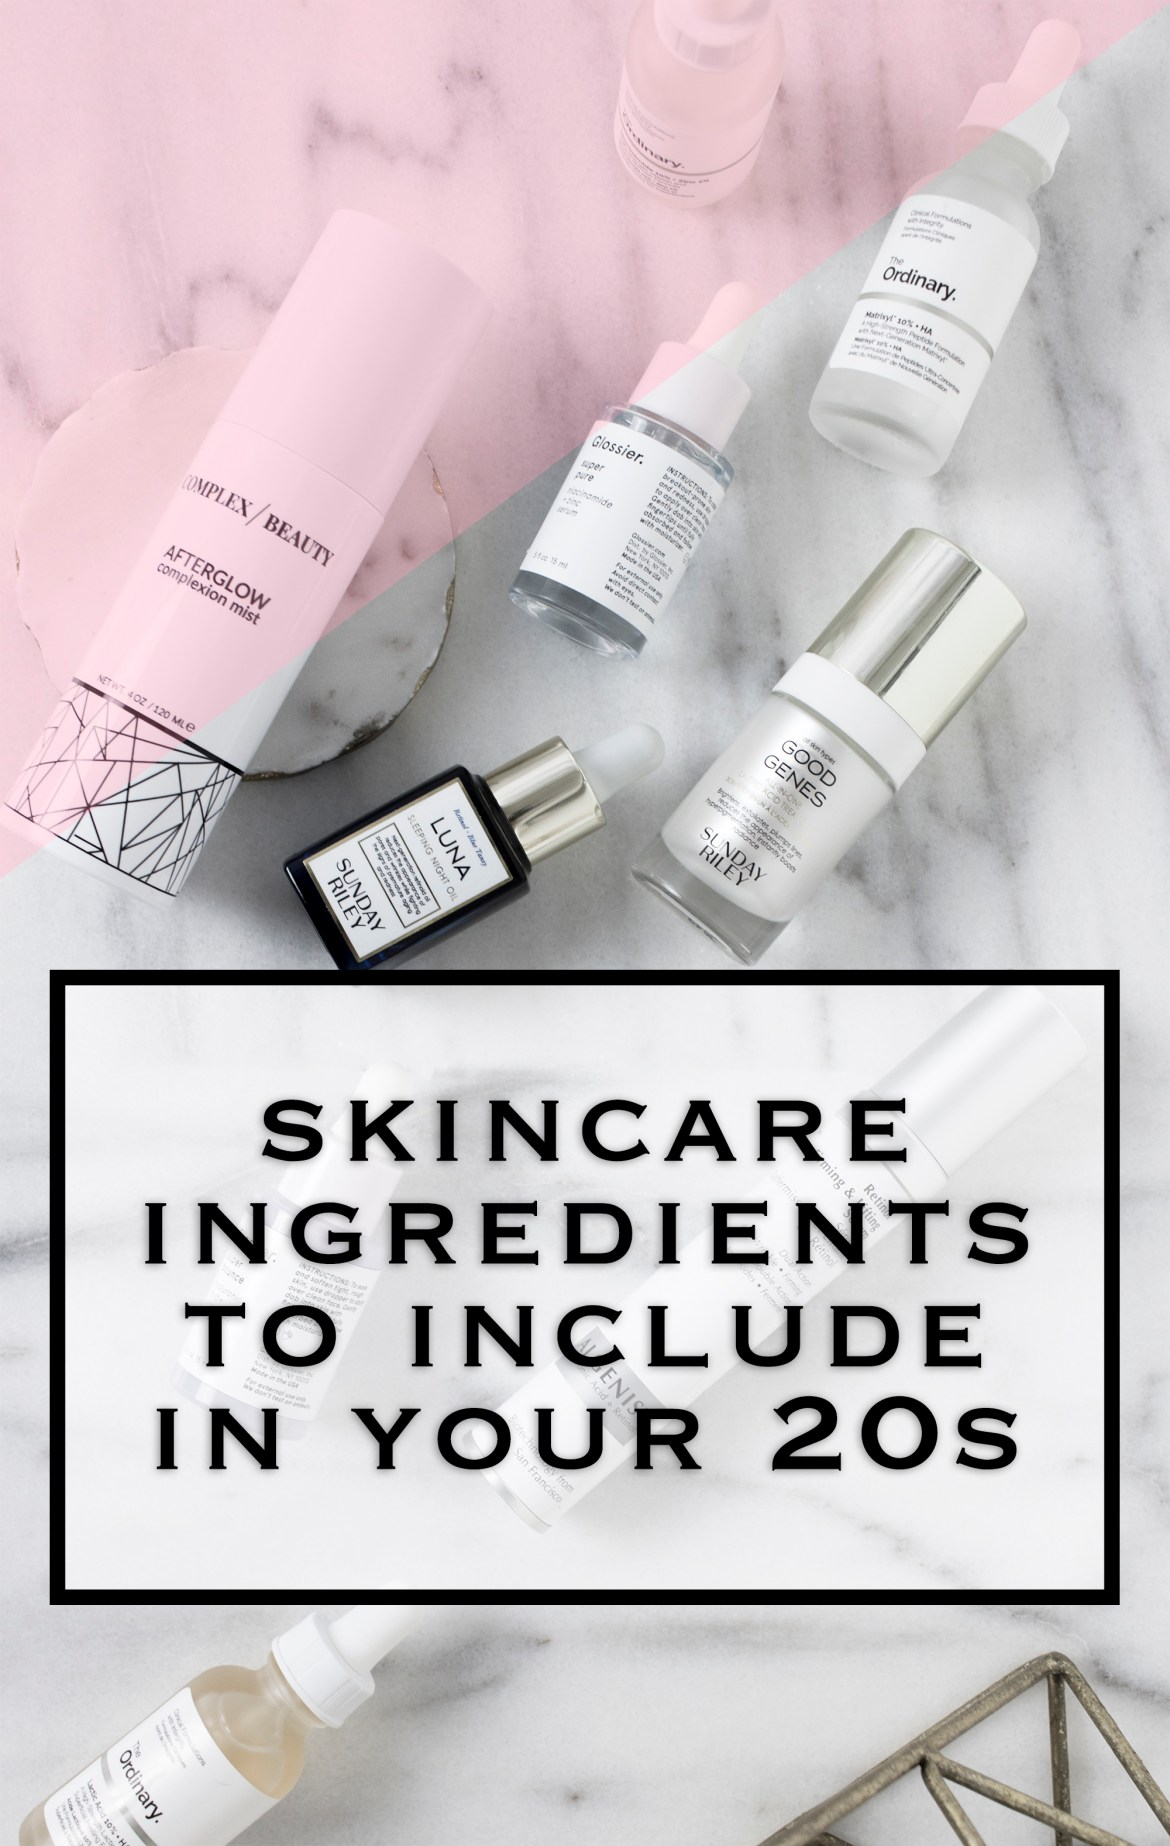 Skincare ingredients to include in your 20s for anti aging